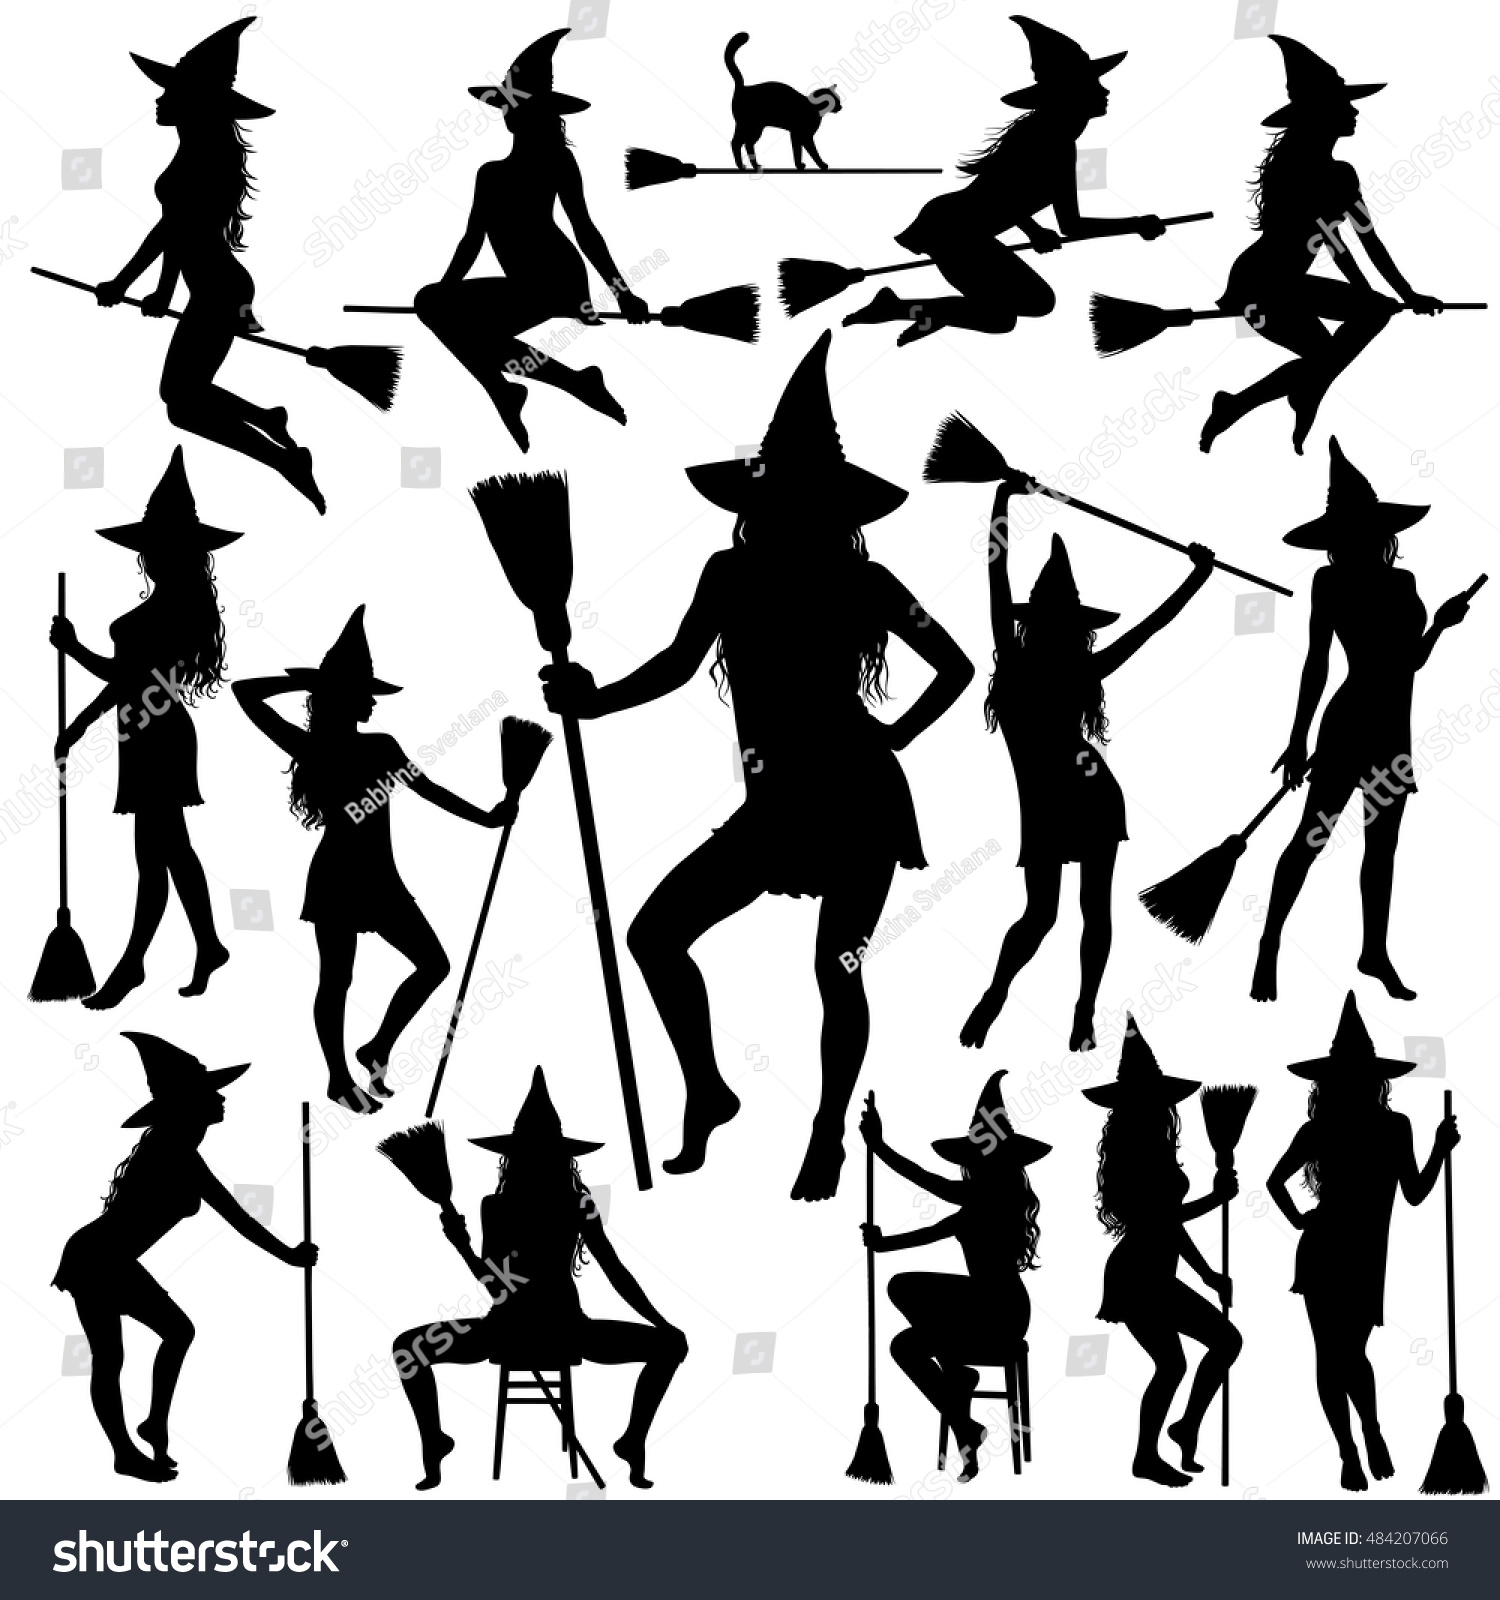 silhouettes halloween witches standing sitting poses stock vector